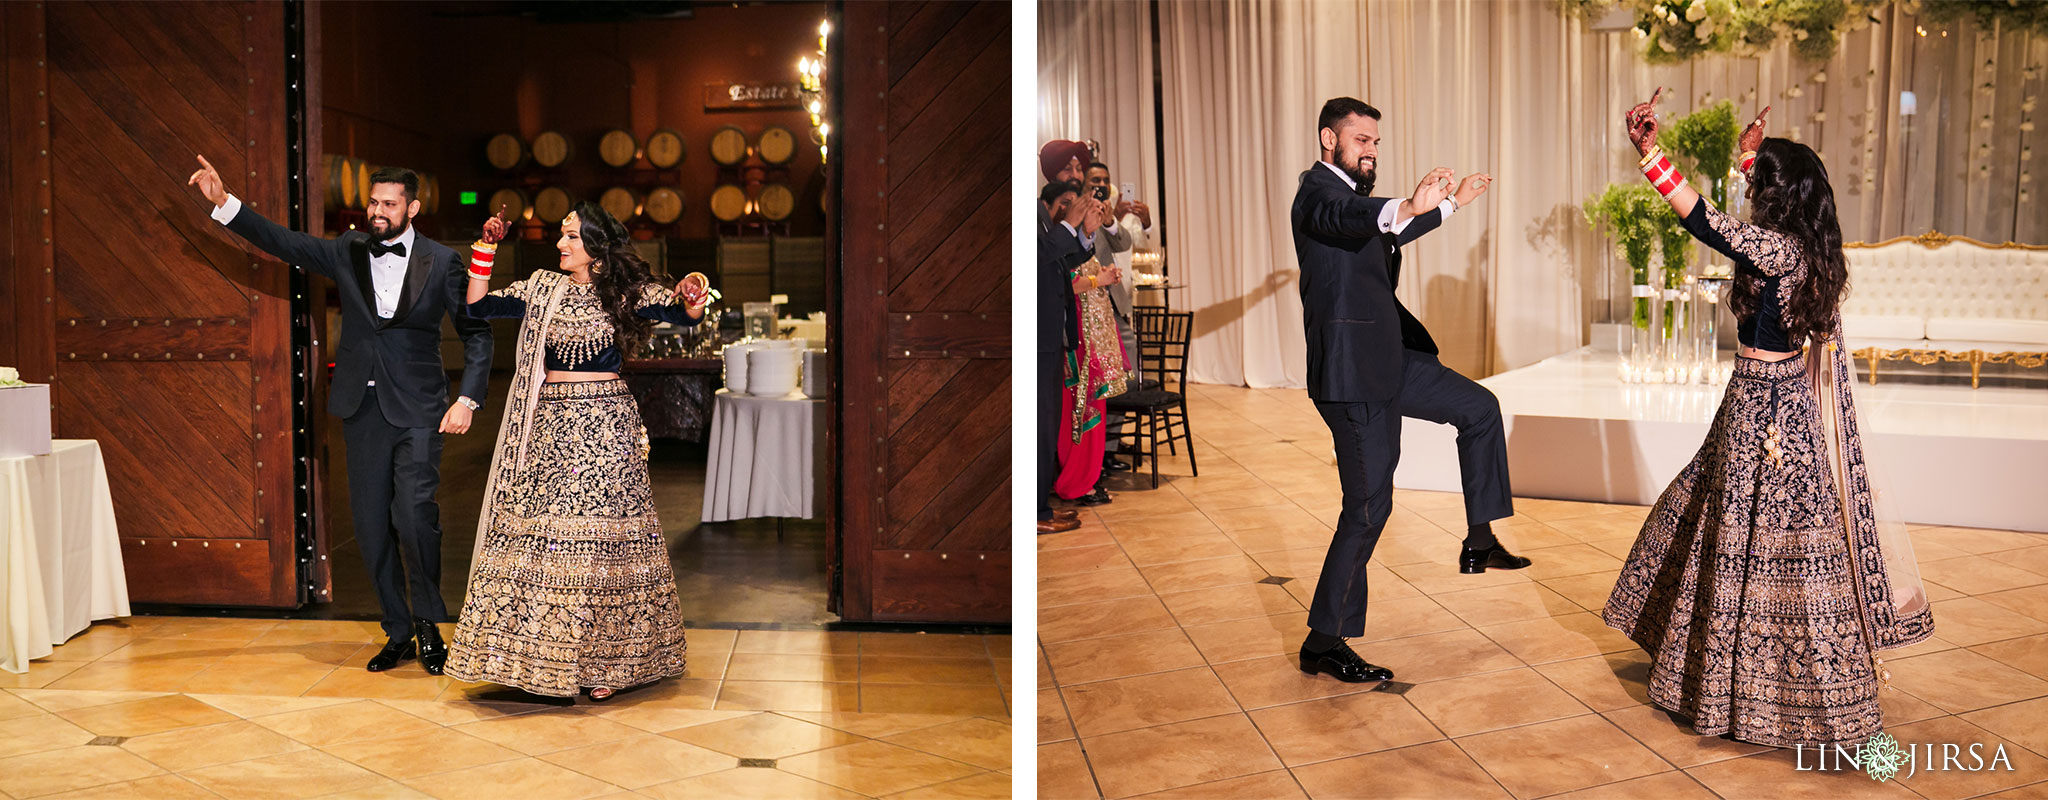 33 palm event center vineyard pleasanton punjabi sikh indian wedding photography